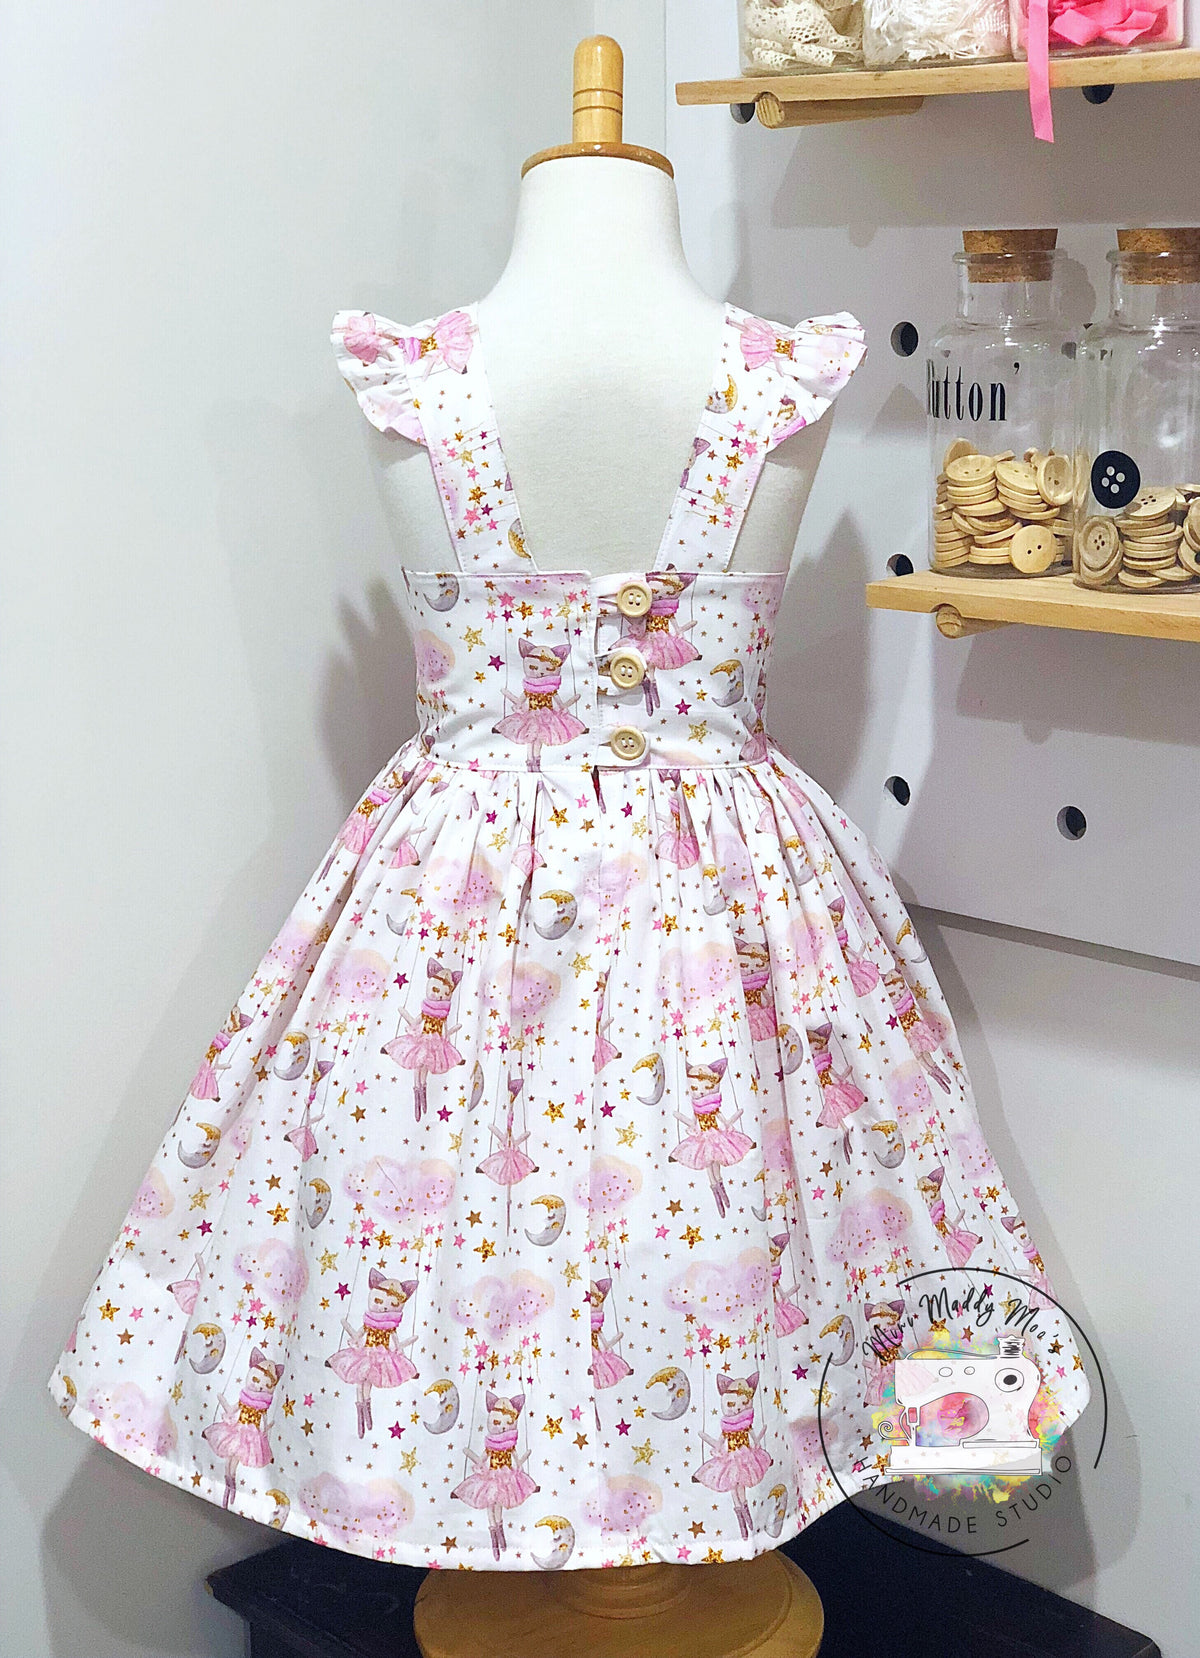 Bow Peep Dress - Mini Maddy Moo's